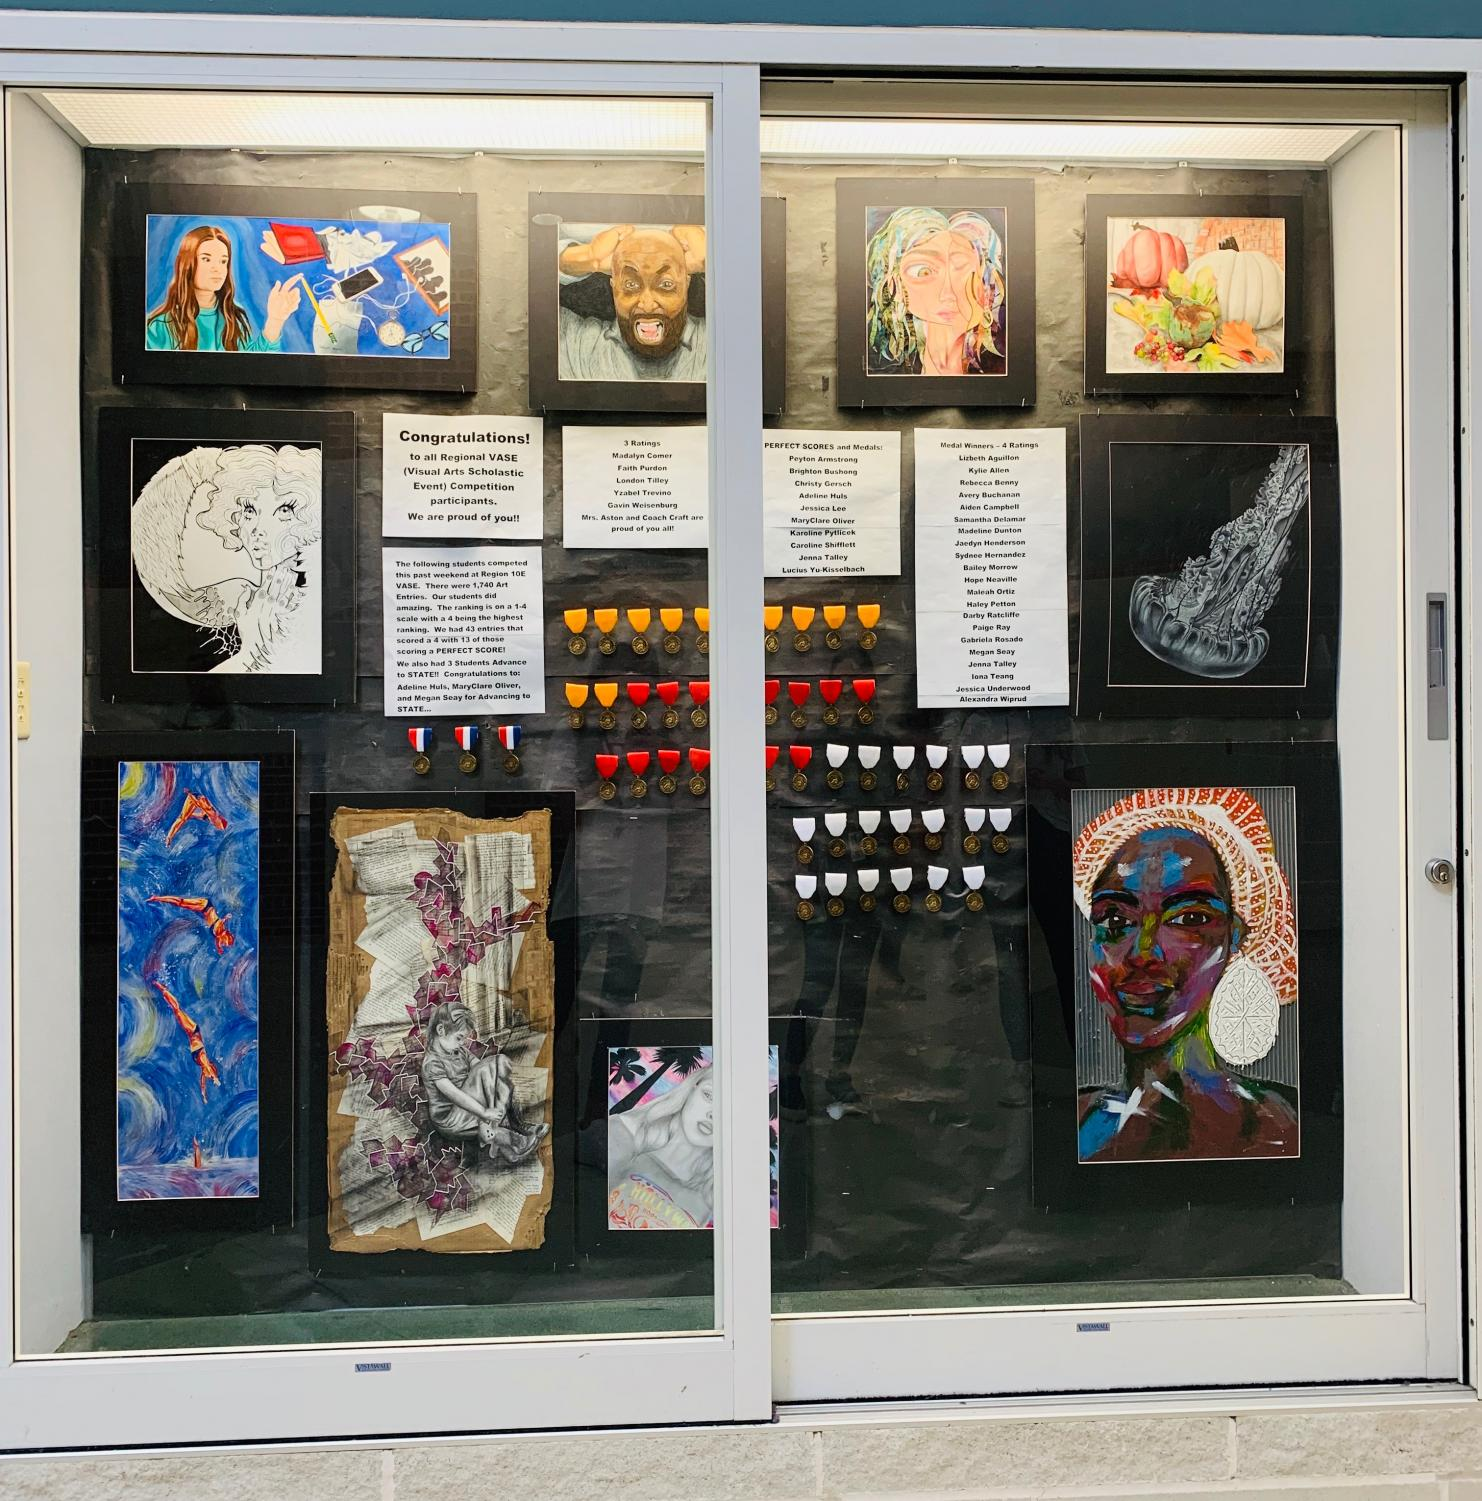 """Expressing creativity// Heath High School is one of the 21 schools that is represented in the 2019 Rockwall ISD District Art Show. Families and friends can come view the art of students throughout all of Rockwall. """"The District Art show is an amazing opportunity that enables the students of Rockwall ISD to showcase their artwork to the community. I really enjoy seeing the entire district coming together exhibiting various forms of art, both 2D and 3d, from K-12th grade,"""" said Julia Deleon."""